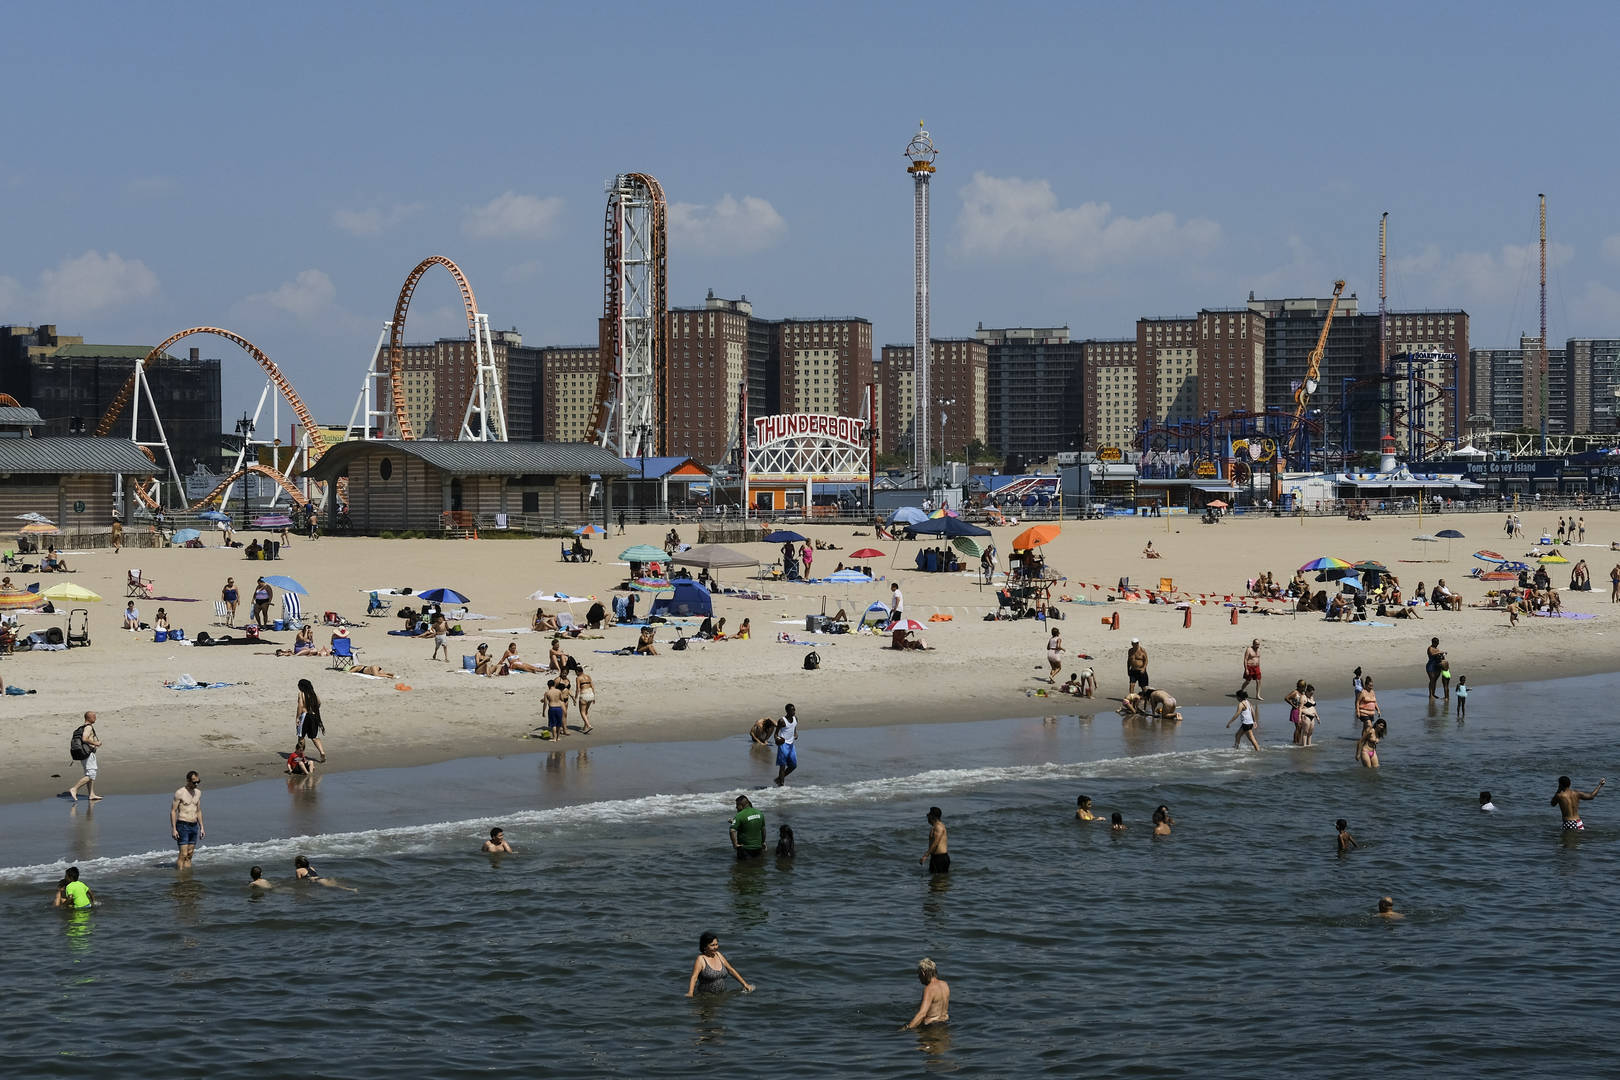 Coney Island To Remove Amusement Park Rides To Focus On Water Park